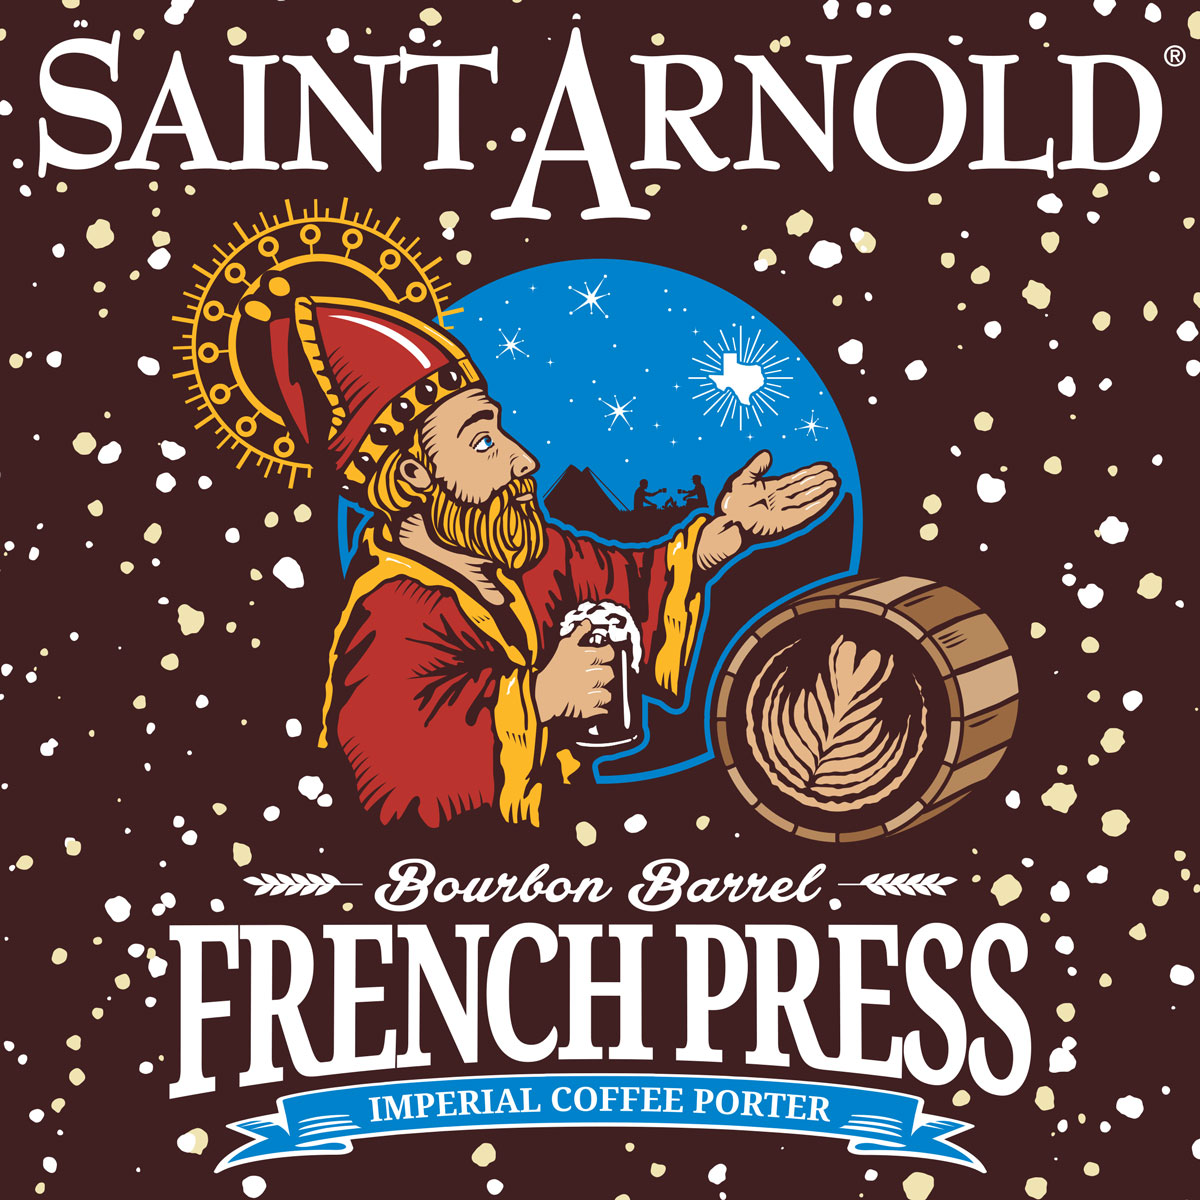 brand_image_bourbon_barrel_french_press